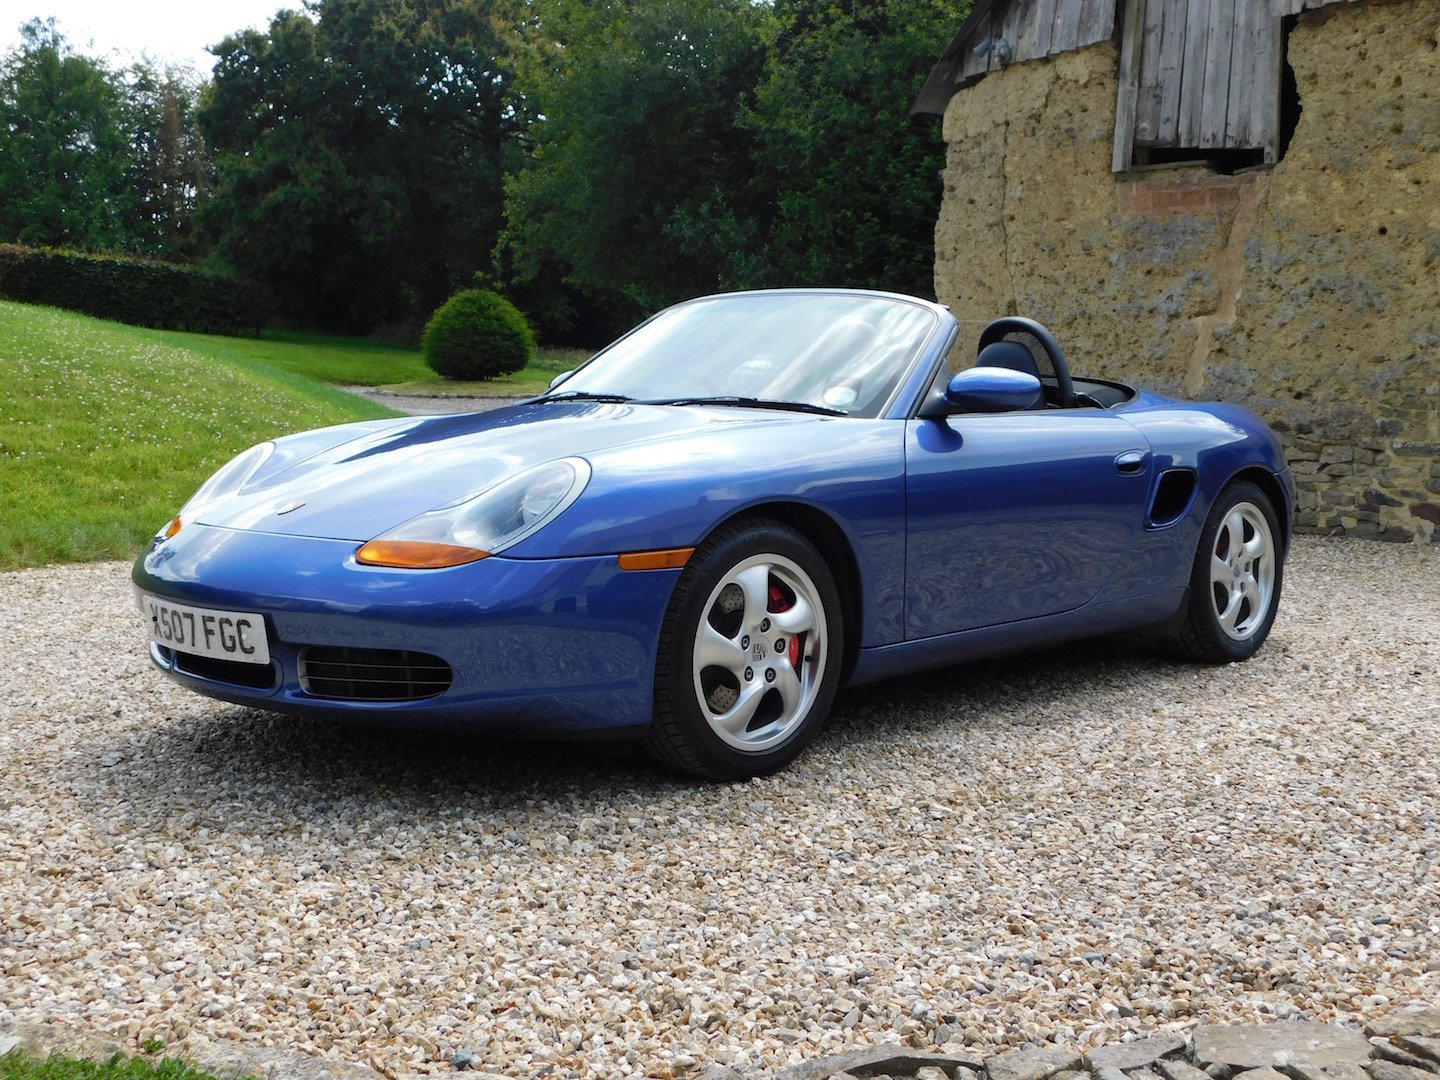 2000 Porsche 986 Boxster 3.2 S - 1 owner, 19k miles, concours For Sale (picture 4 of 6)